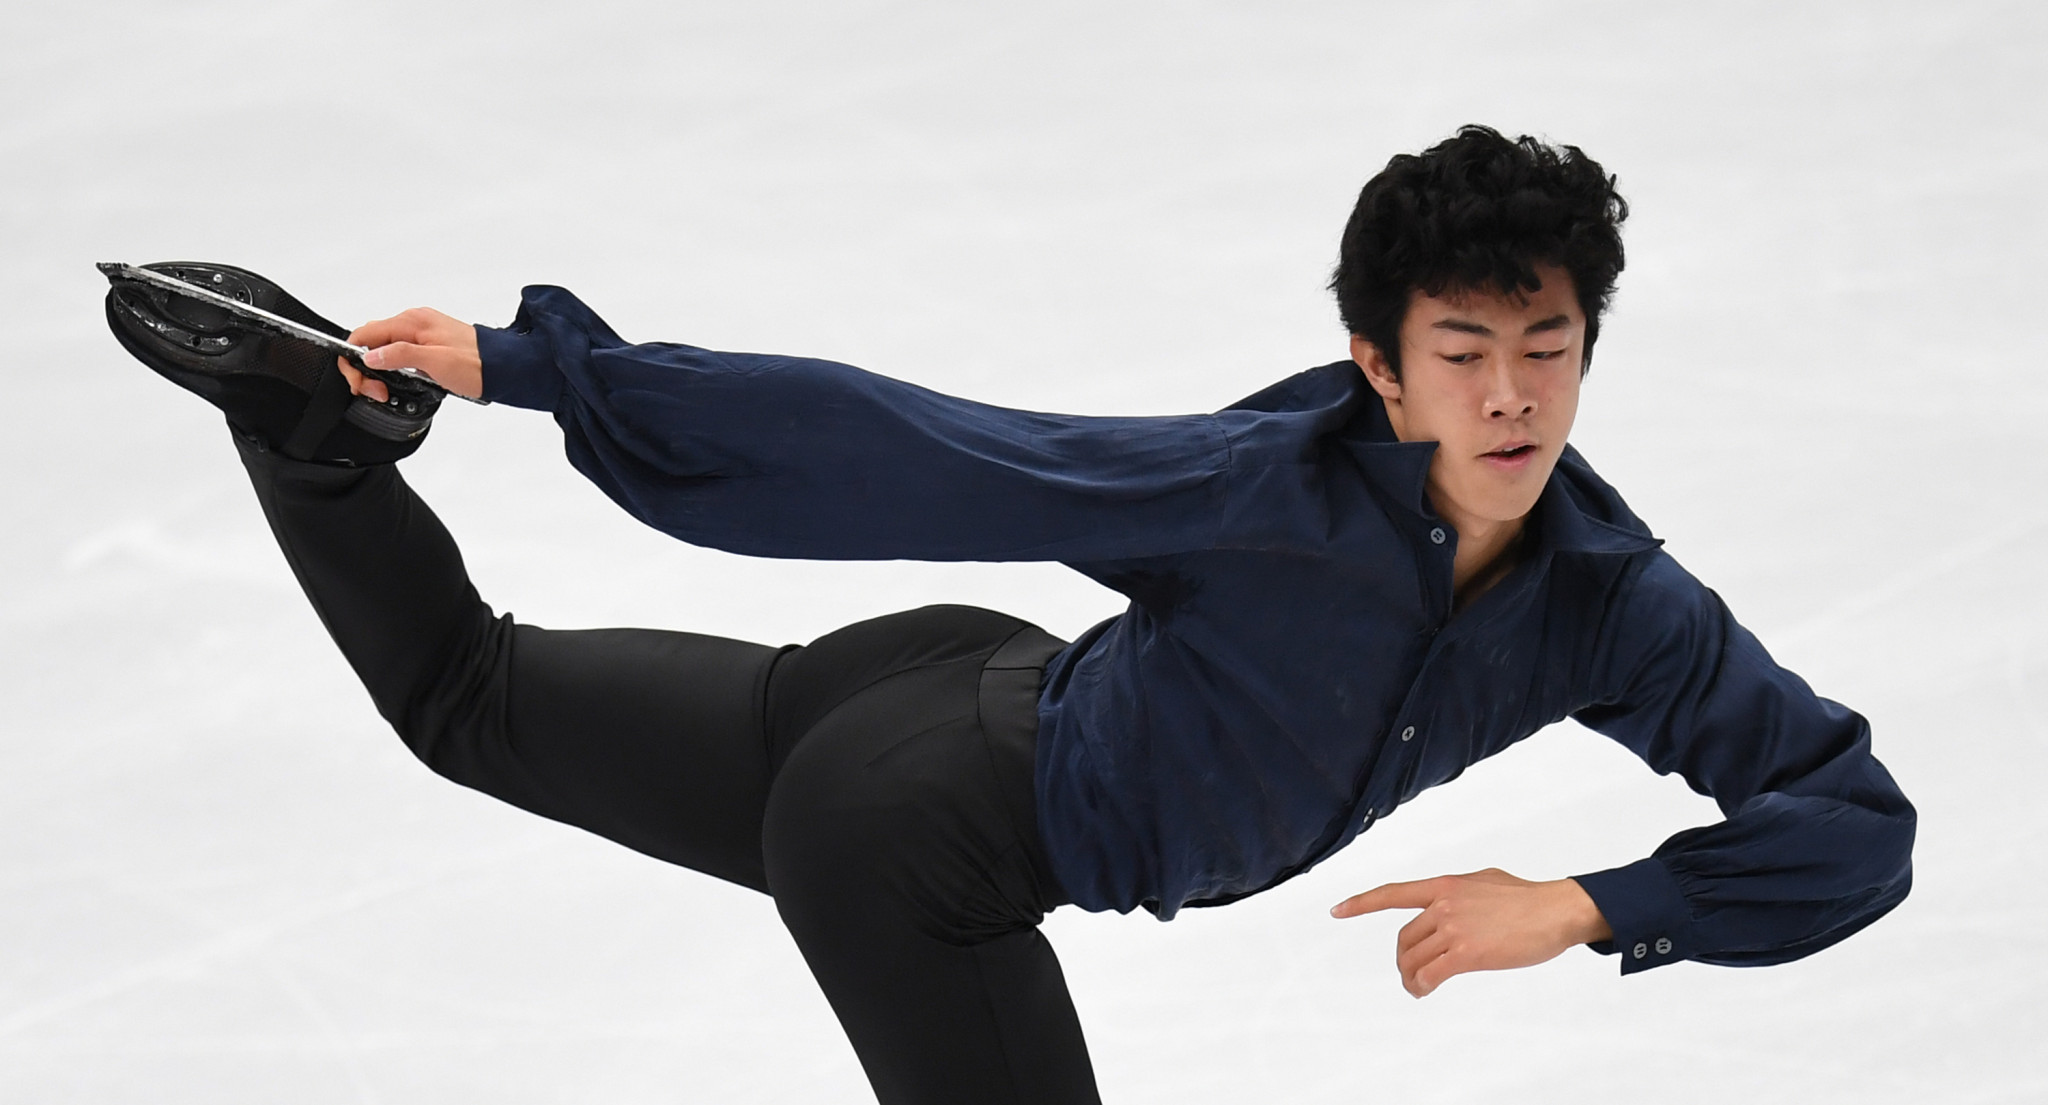 Chen wins men's event at ISU Grand Prix of Figure Skating in Moscow